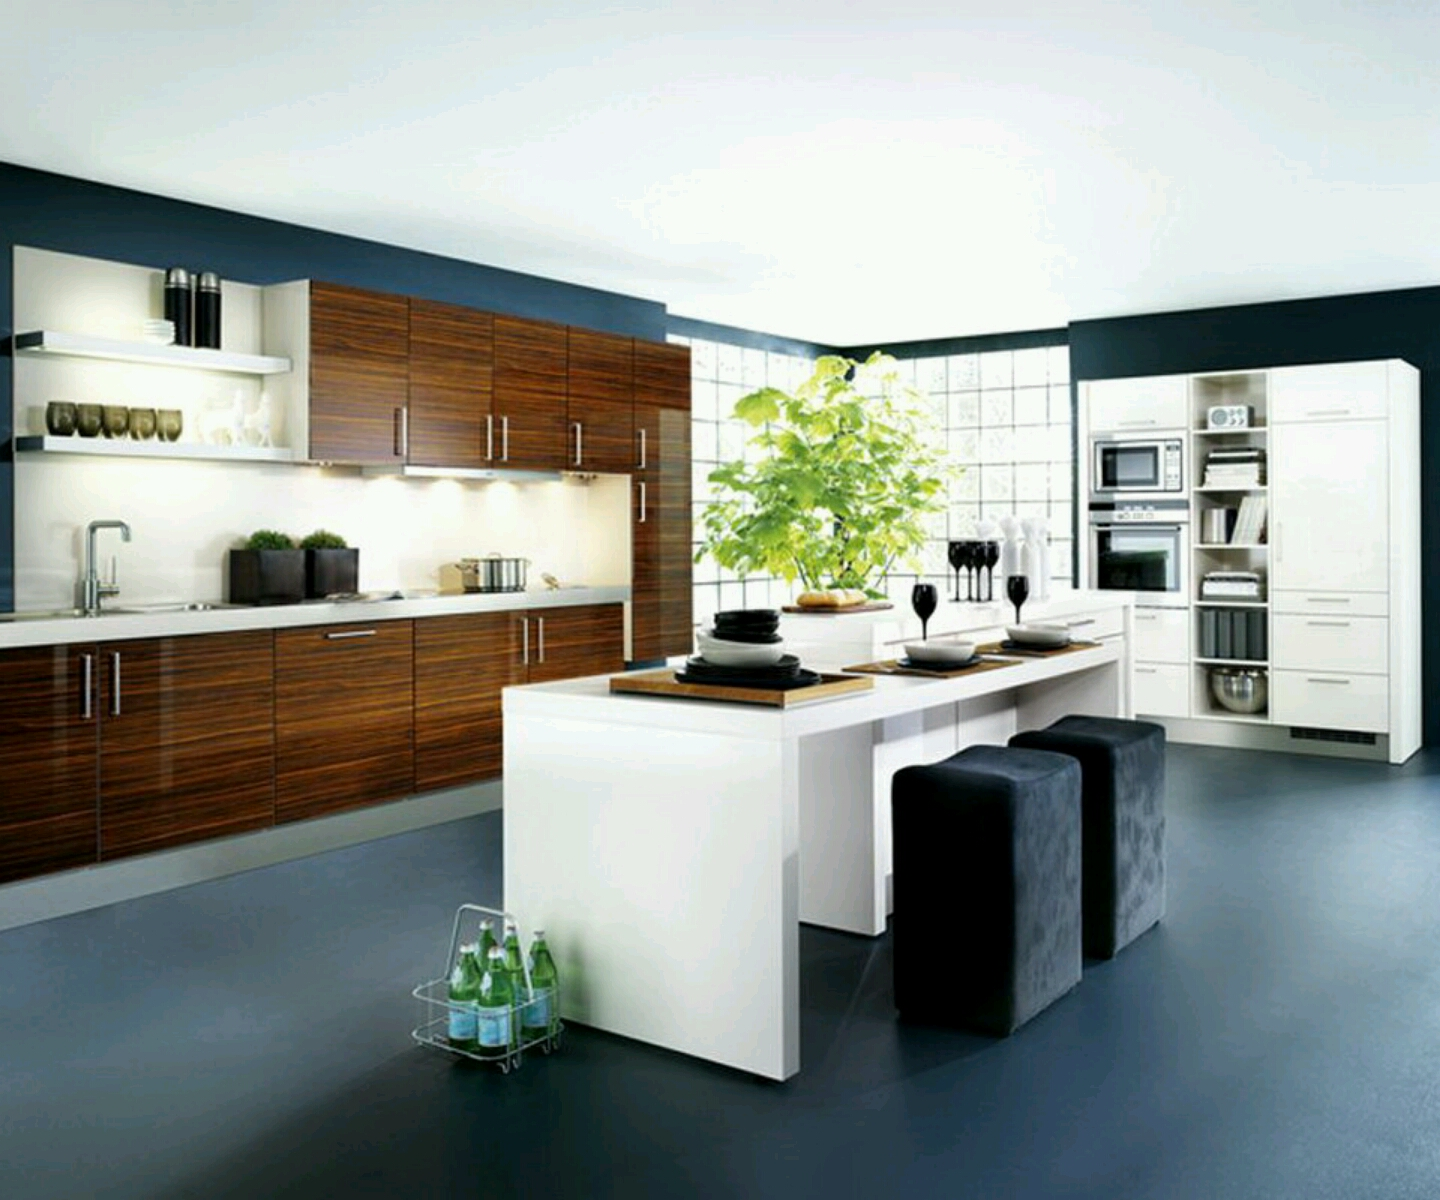 New home designs latest kitchen cabinets designs modern for Kitchen designs cabinets